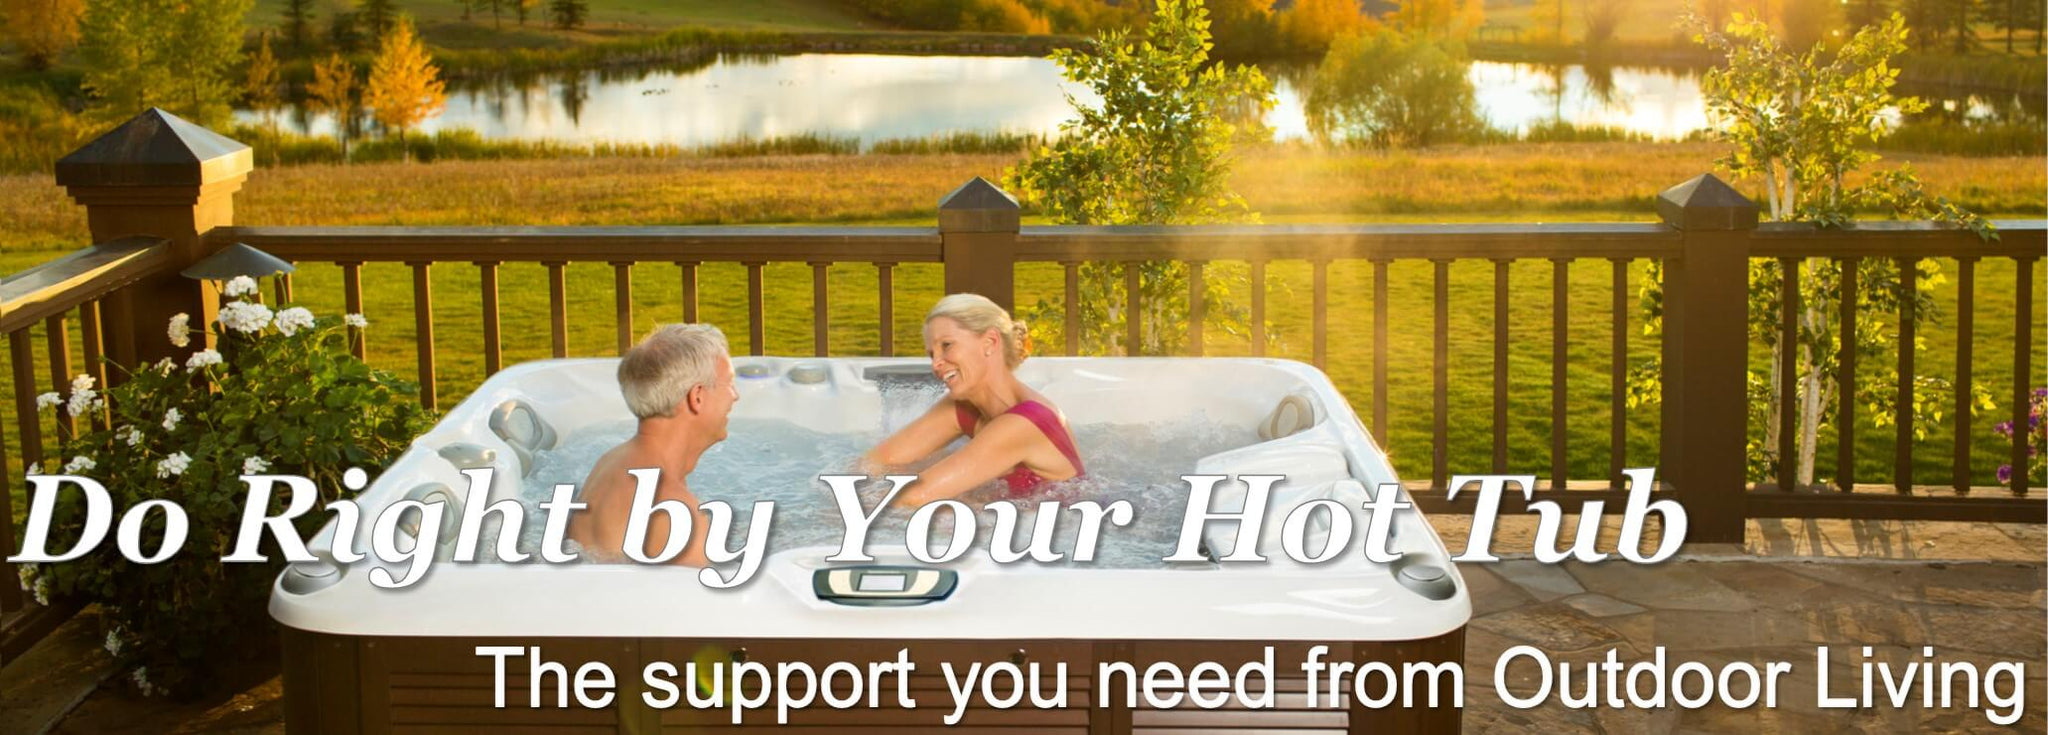 hot-tub-service-repair